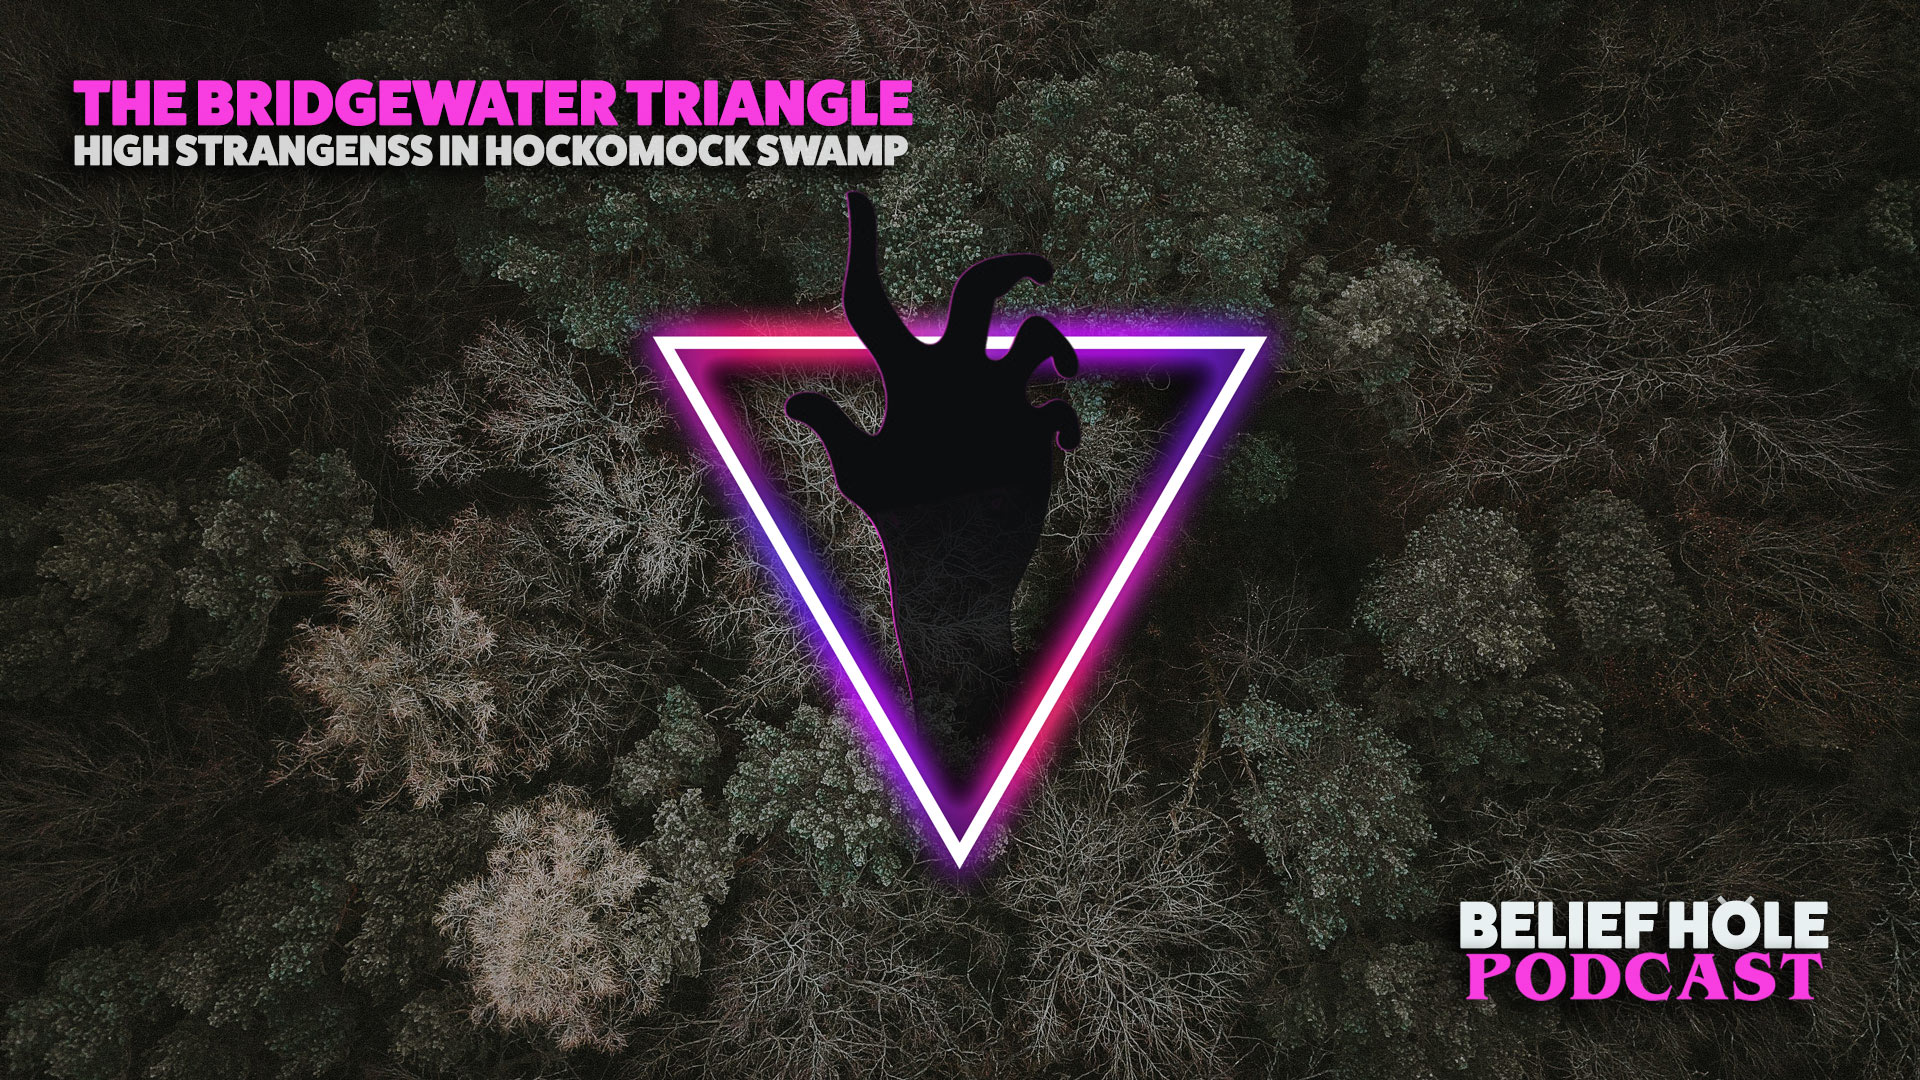 Bridgewater Triangle - Puckwudgie Paranormal - Hockomock Swamp - True Stories - Folklore - Podcast